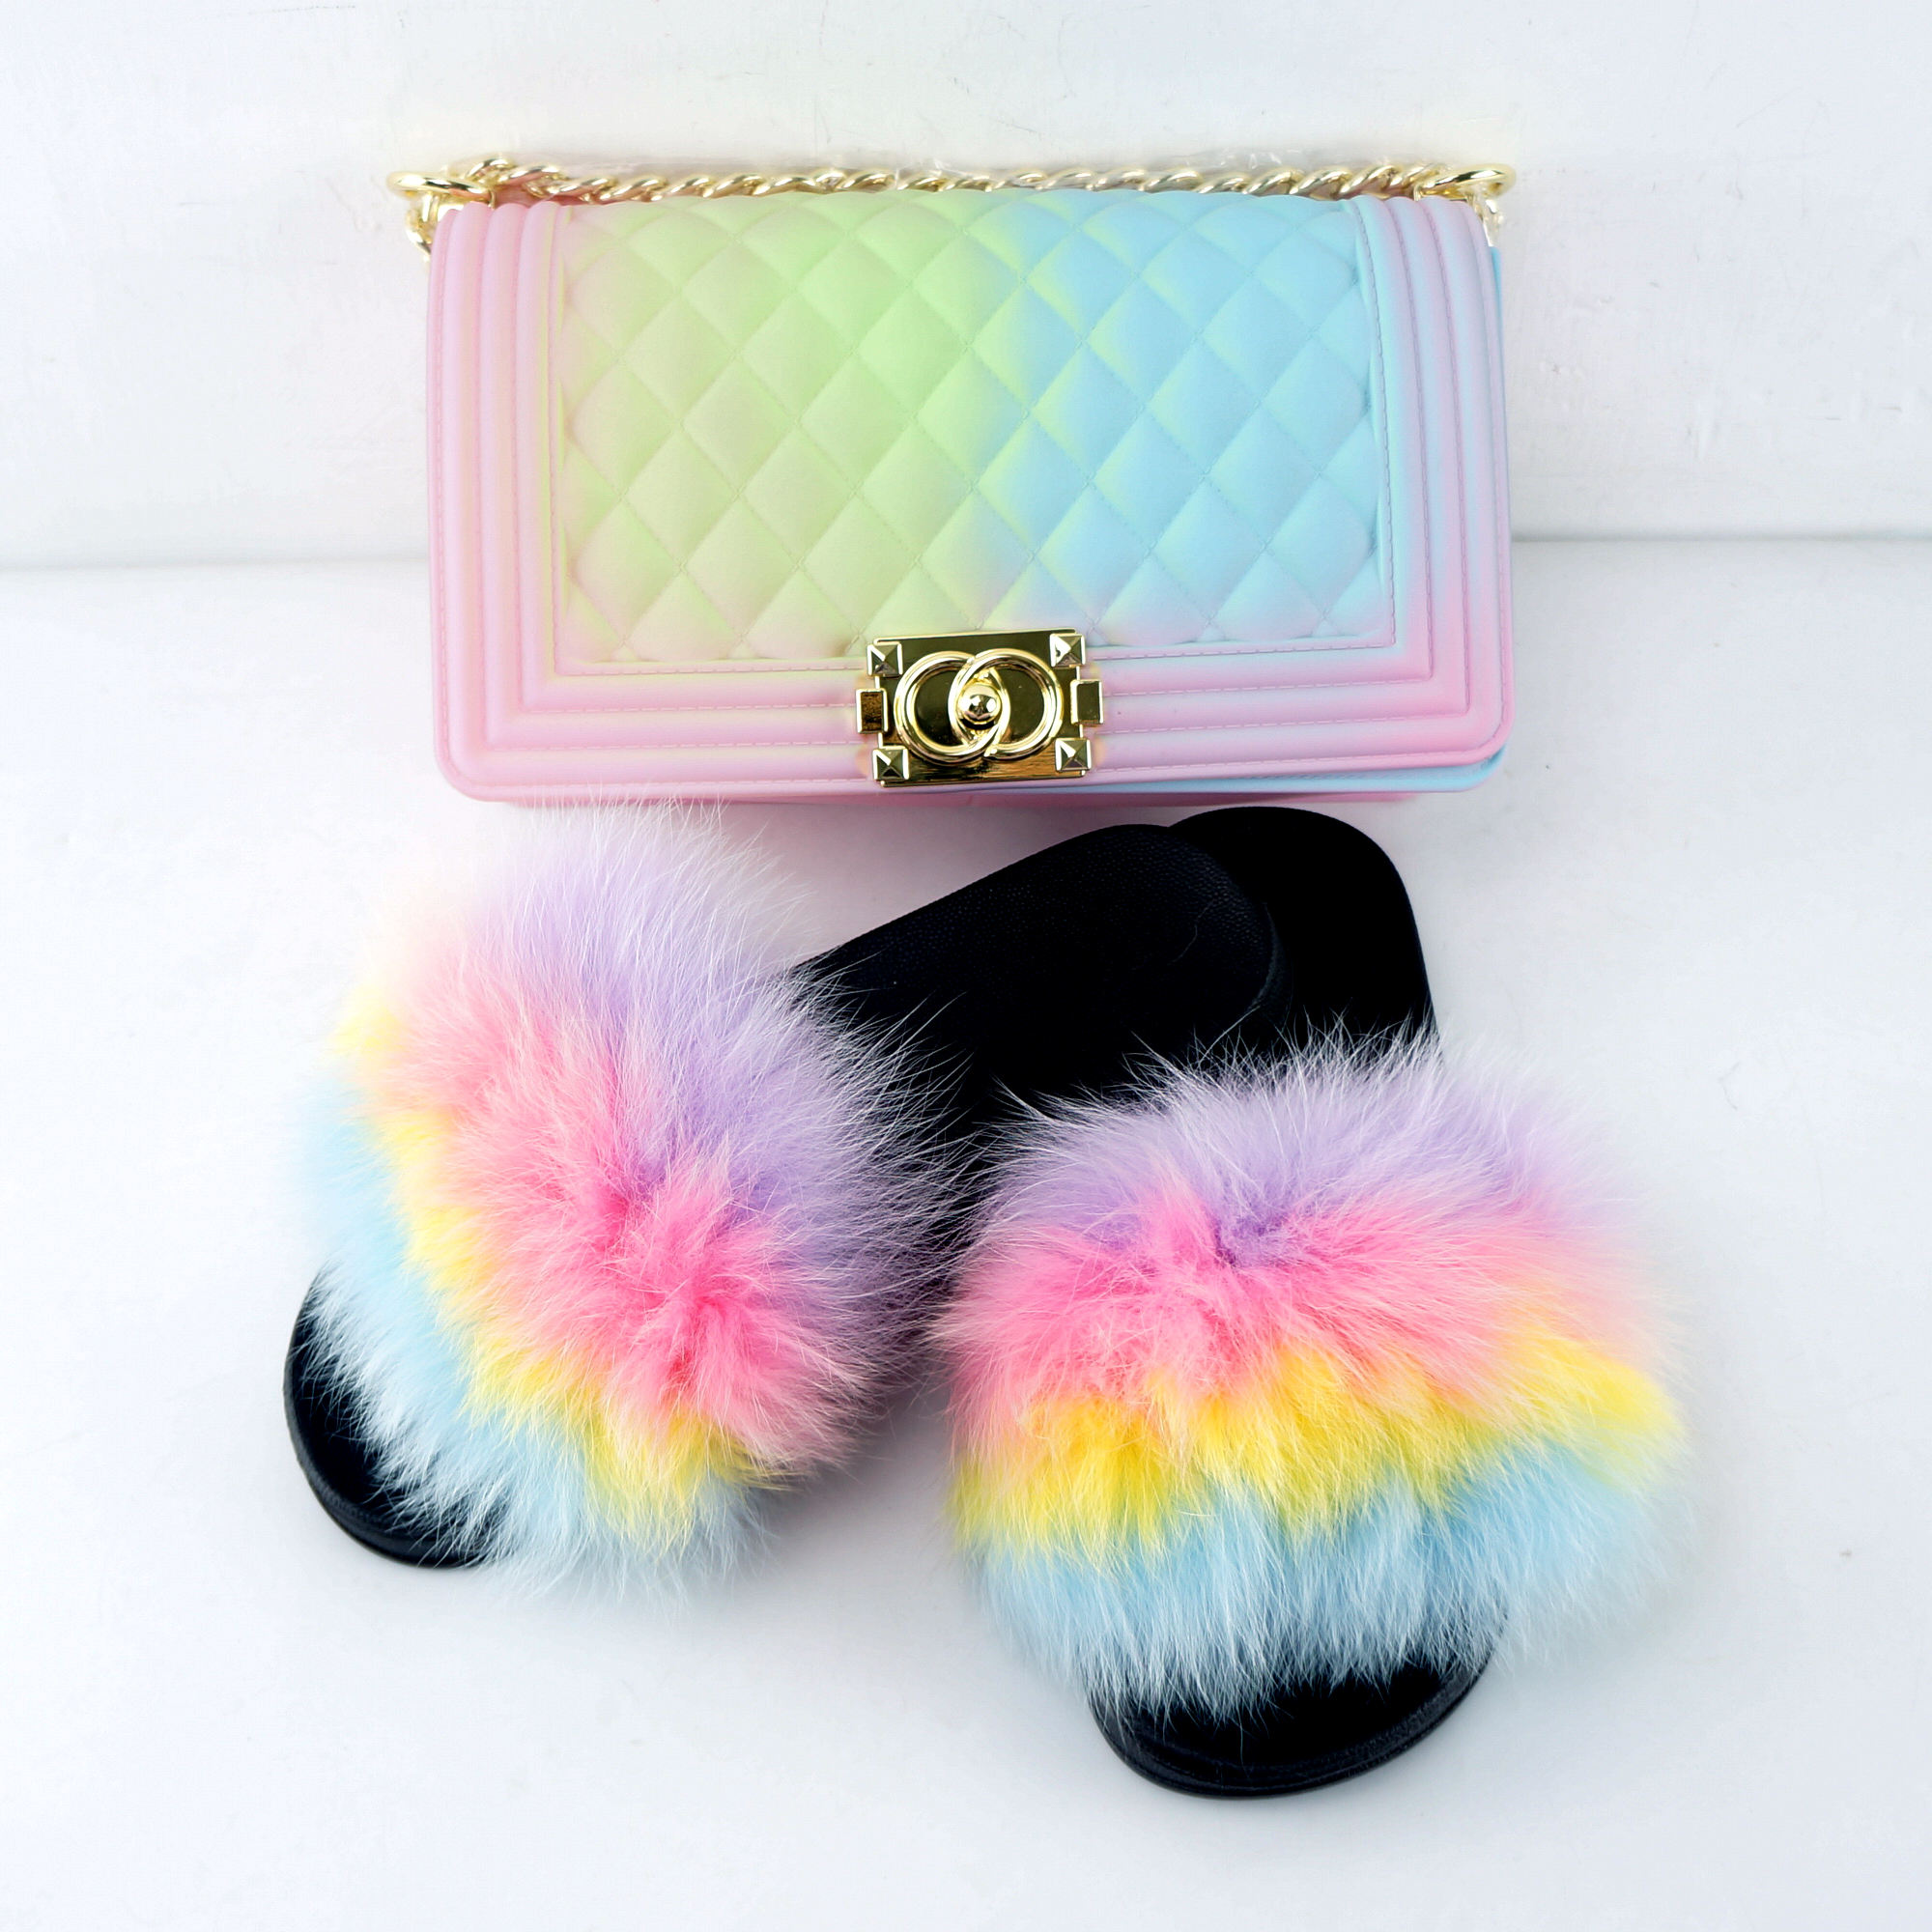 wholesale Rainbow color two piece set jelly purses handbags with matching real fur slides for women